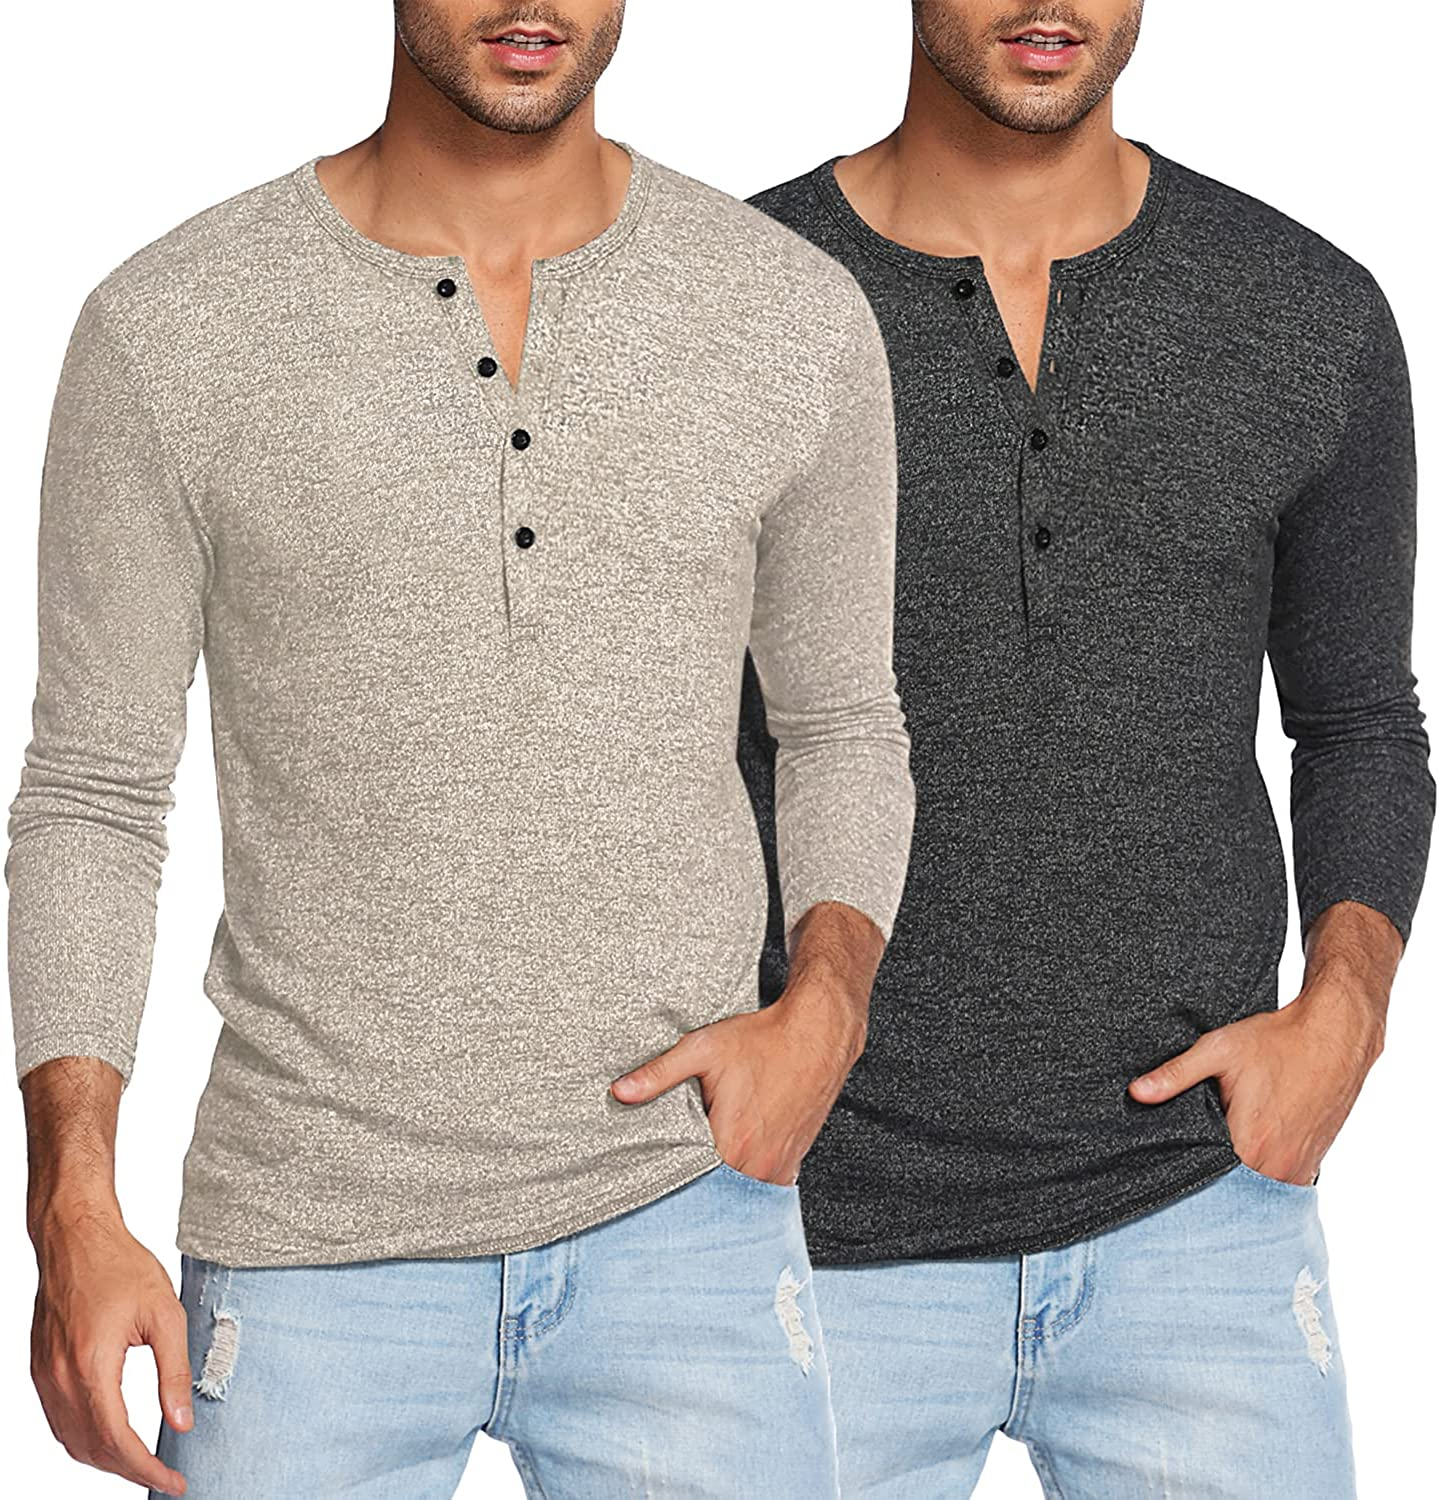 COOFANDY Men's 2Pack Slim Fit Henley Shirts Long Sleeve Lightweight Fashion Casual Cotton Basic T Shirts